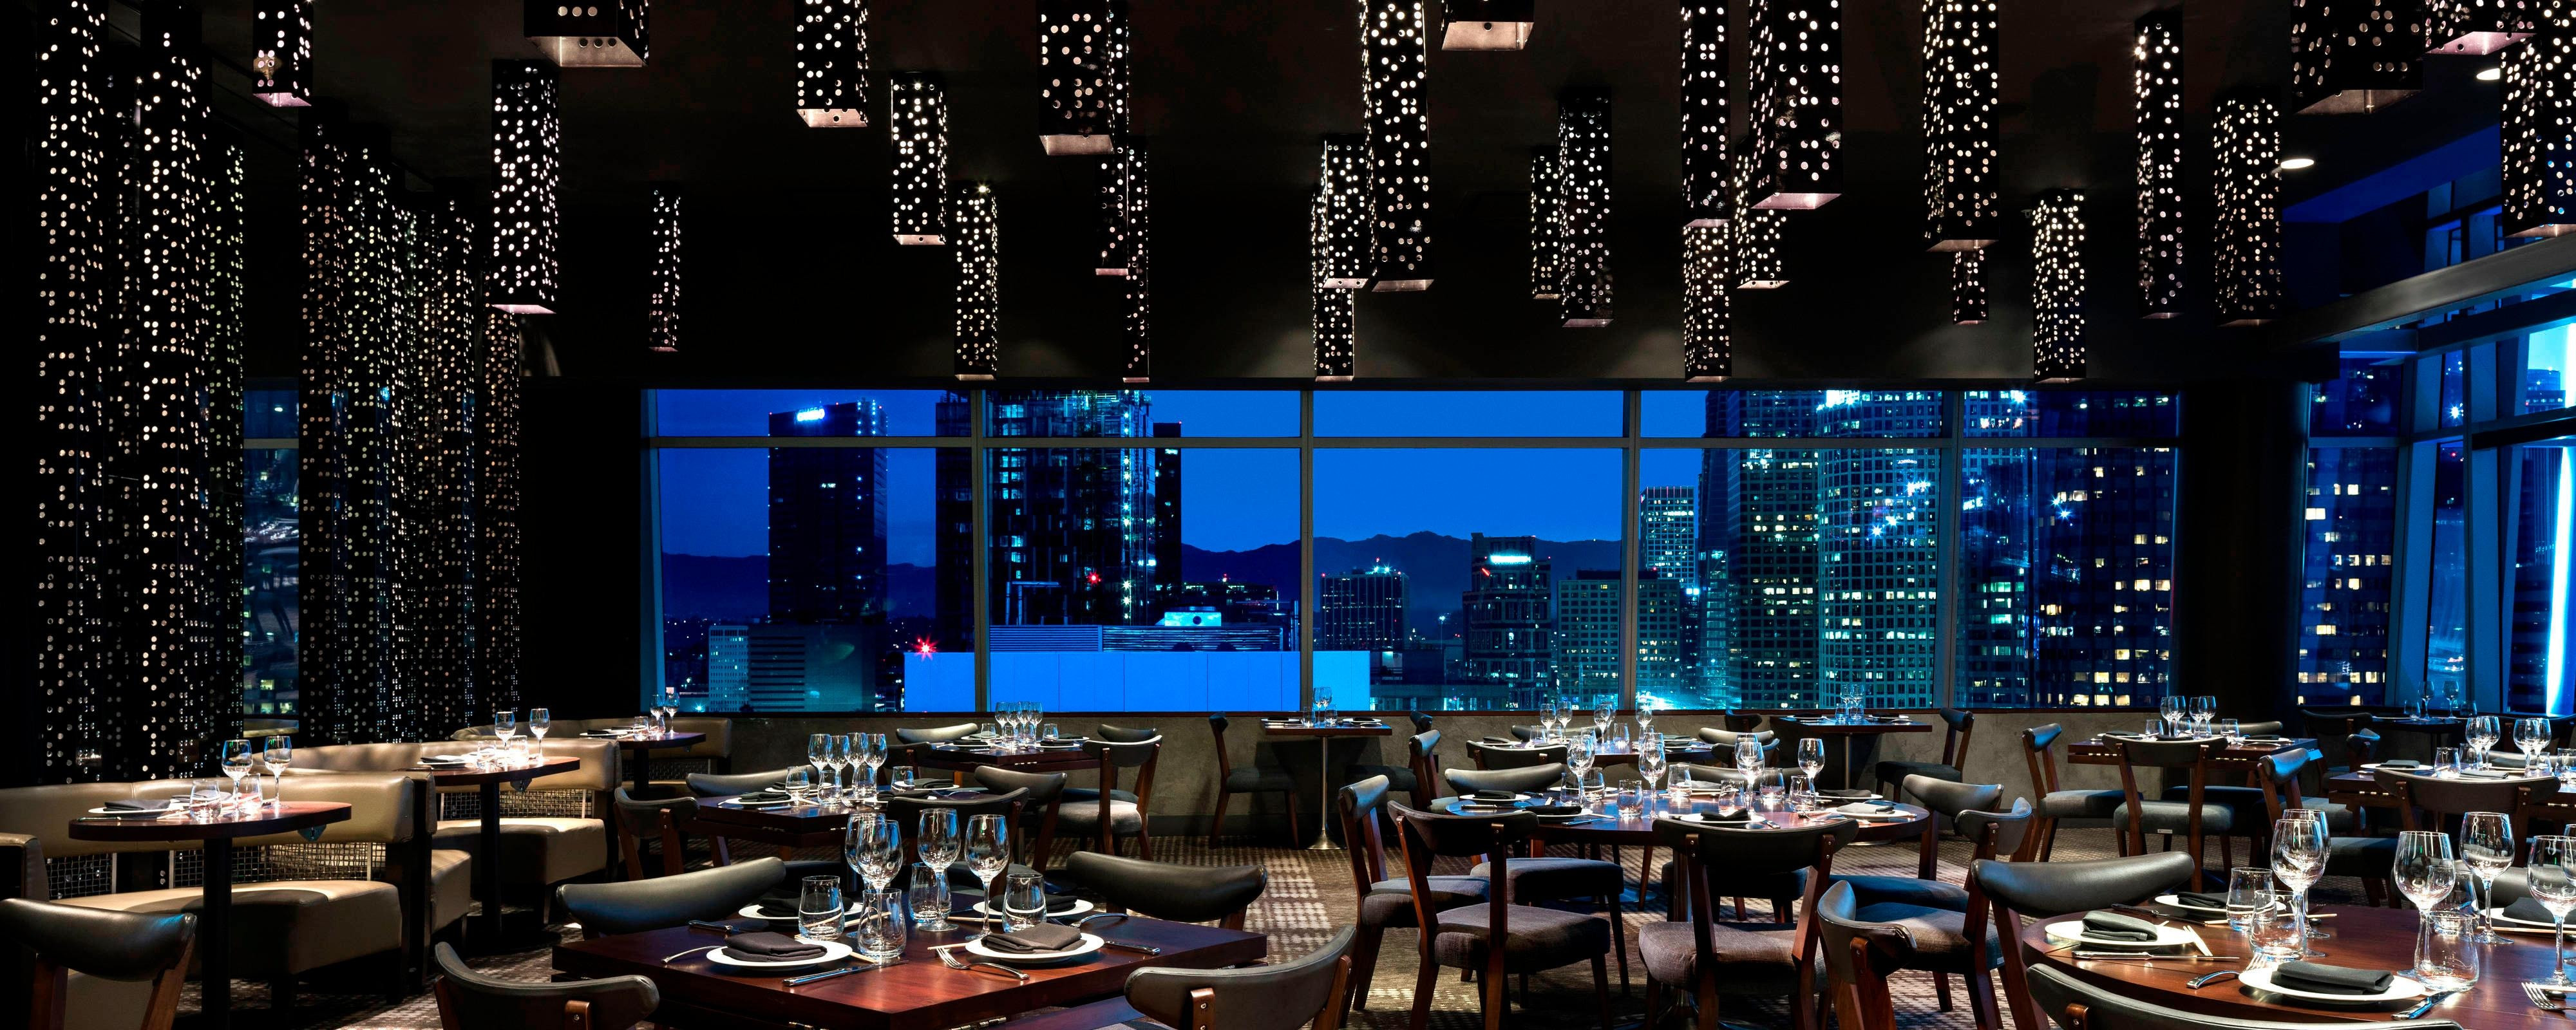 L A Live Restaurants Los Angeles Dining Jw Marriott Los